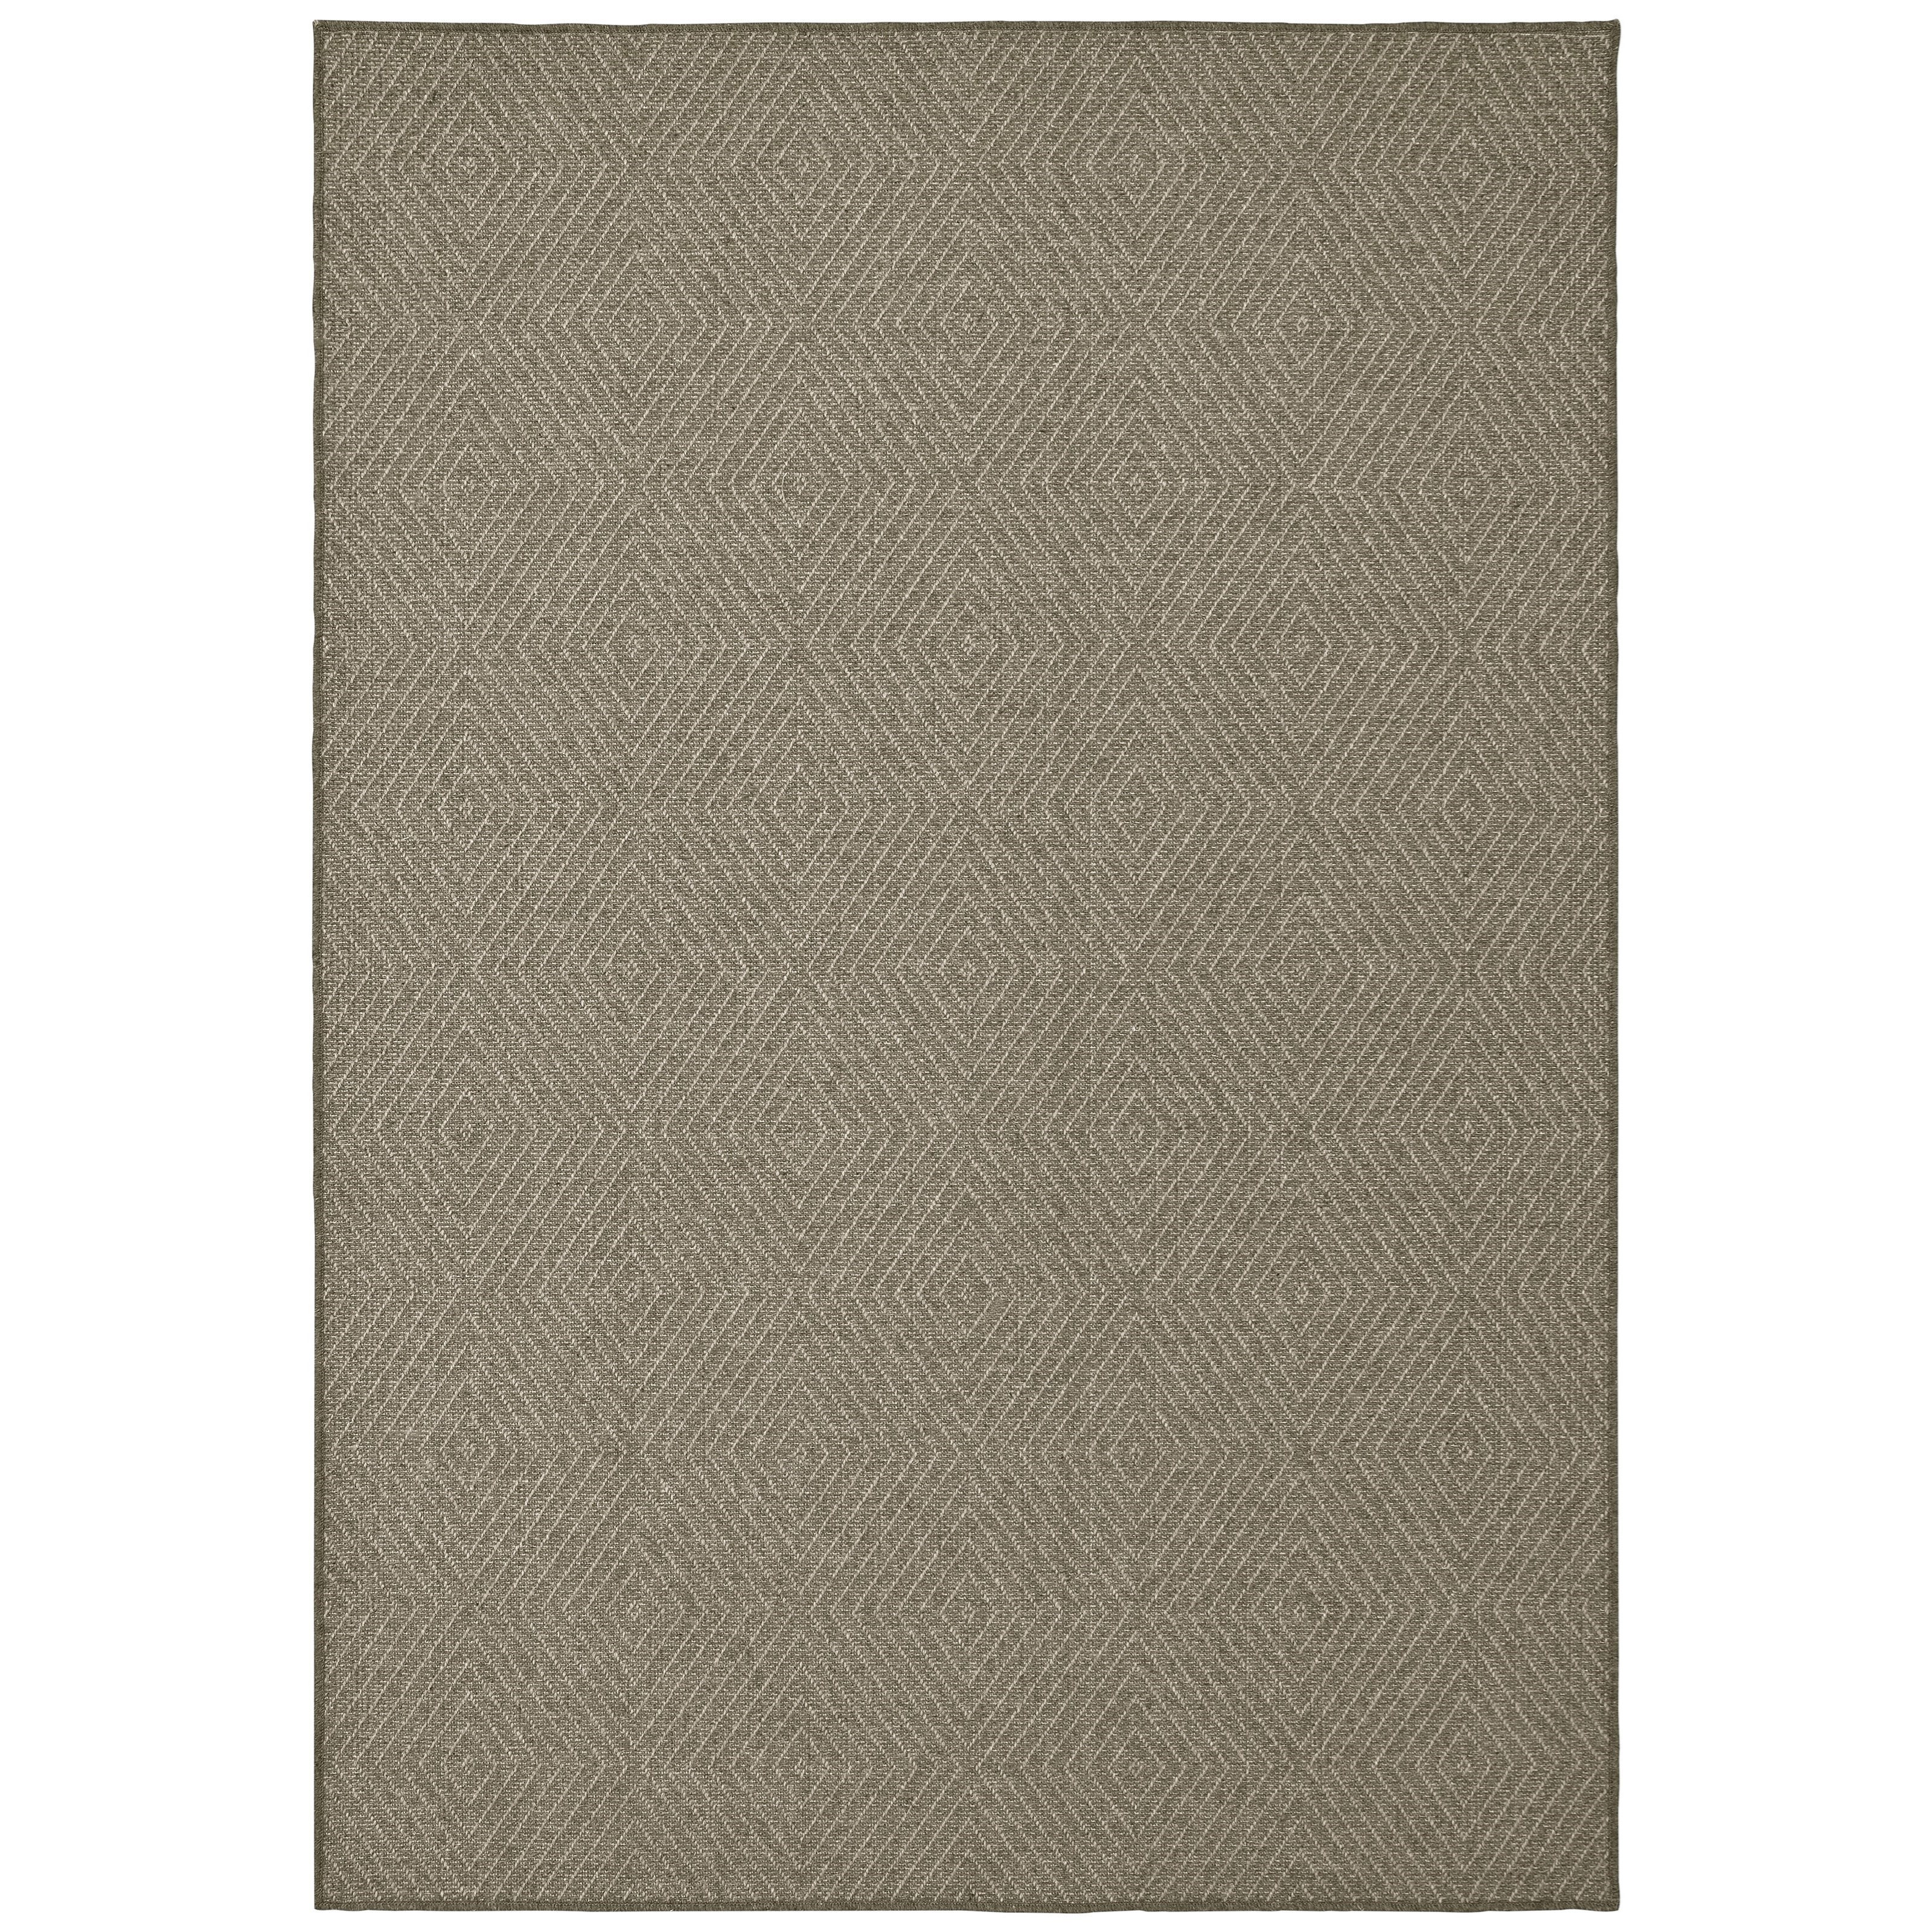 """Boucle 9'10"""" X 12'10"""" Rectangle Rug by Oriental Weavers at Darvin Furniture"""